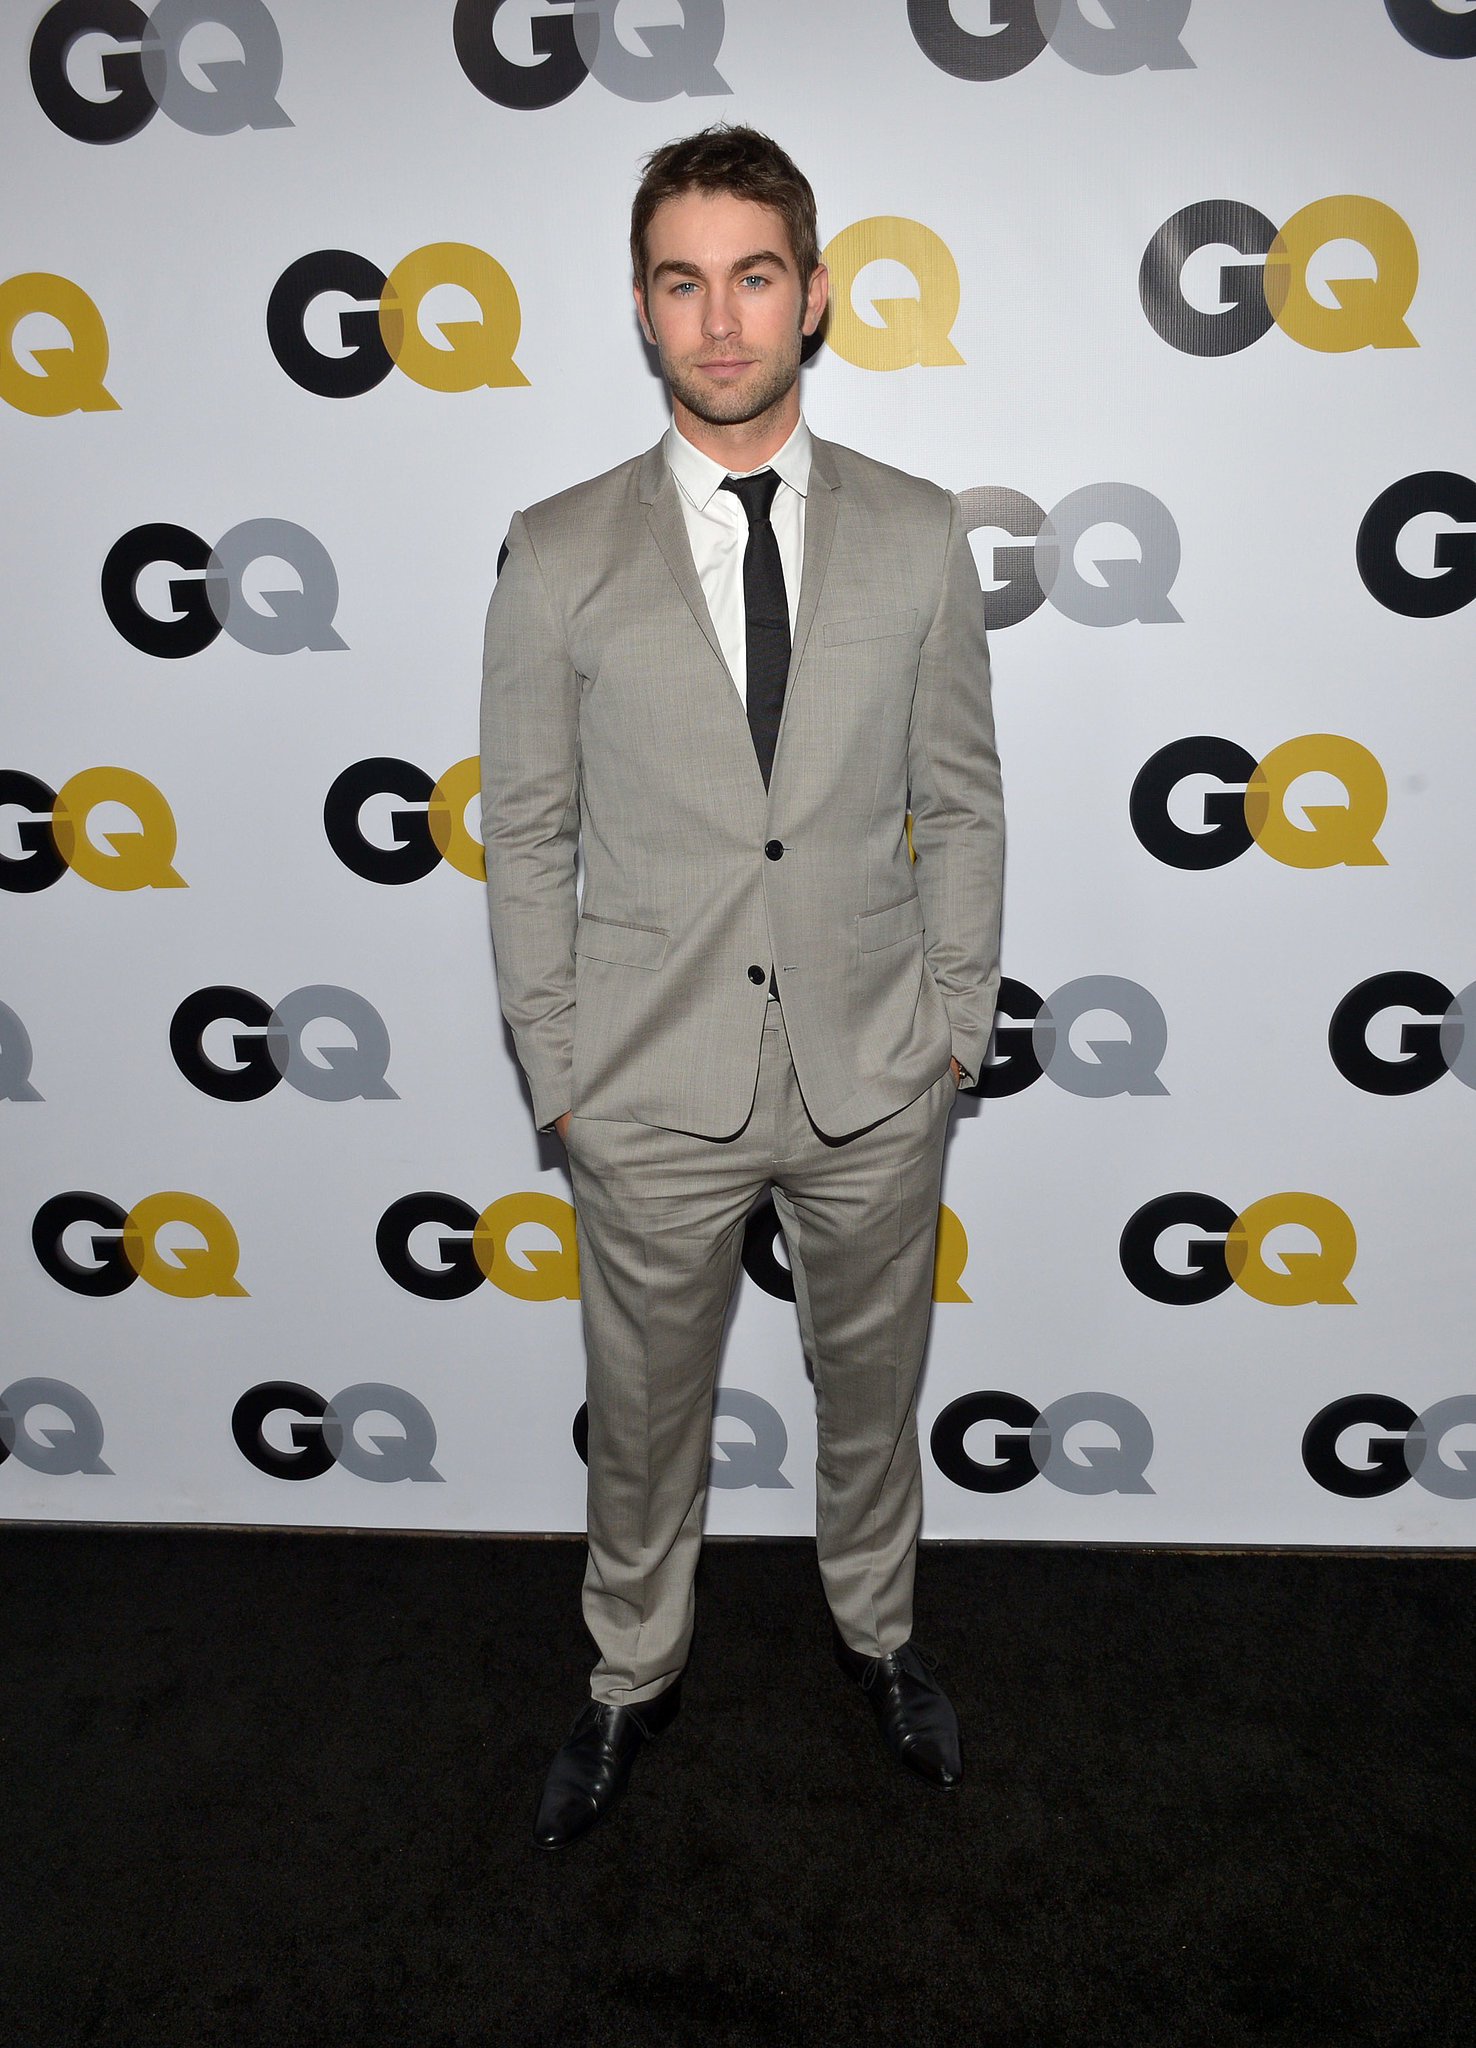 Chace Crawford attended the GQ Men of the Year party.